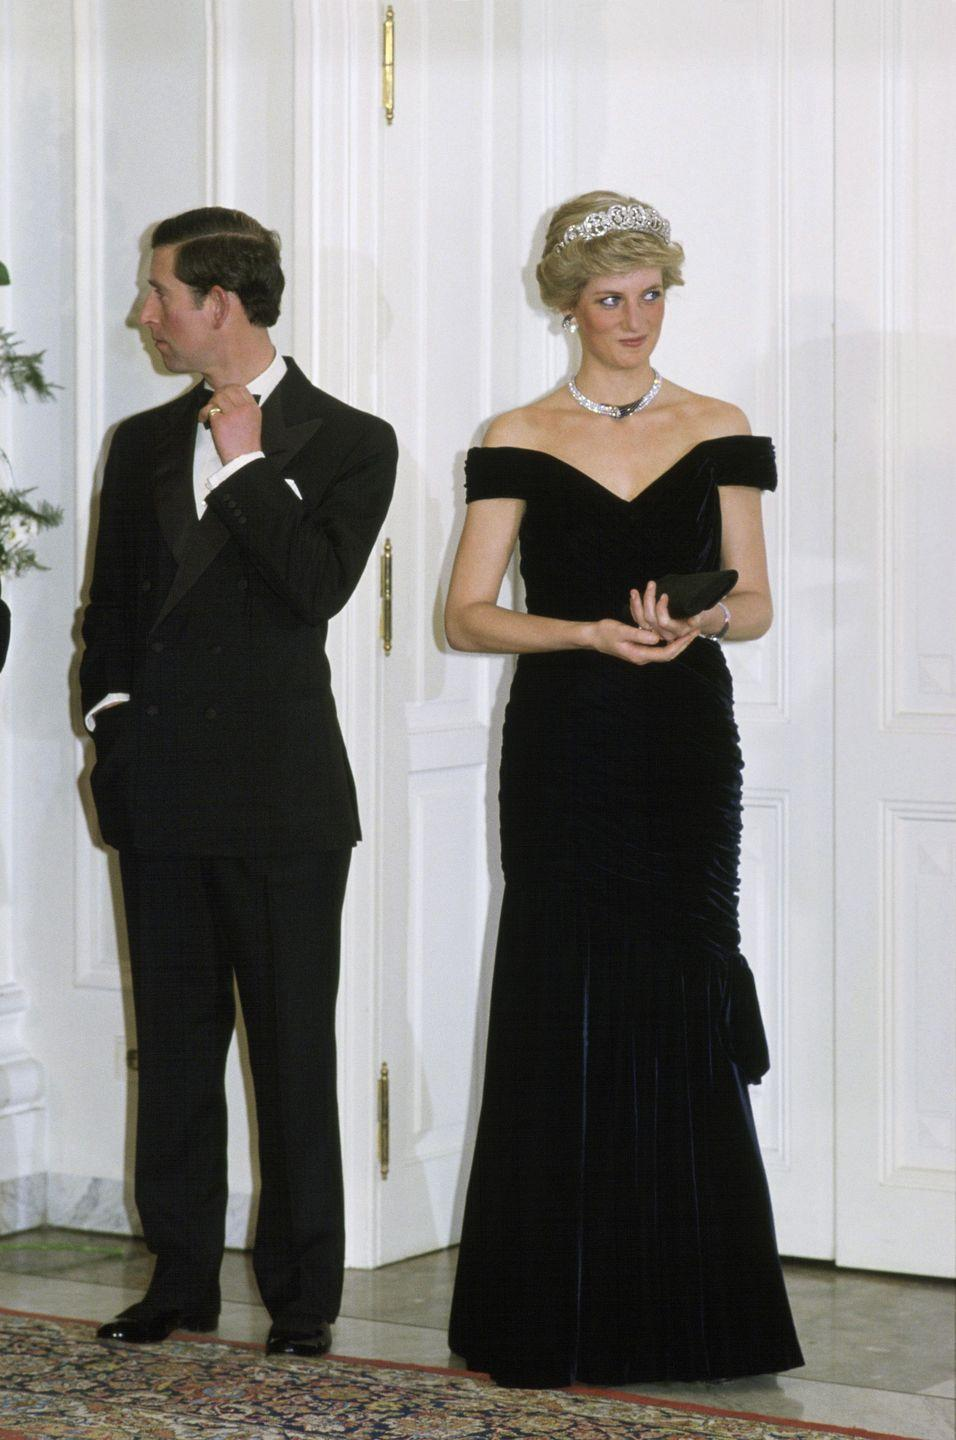 <p>Princess Diana's velvet dress by Victor Edelstein is one of her more iconic ensembles. The Princess wore this dress during a visit to the White House in 1985, where she famously danced with John Travolta. Diana re-wore it two years later on a state visit in Germany, as seen here. </p>